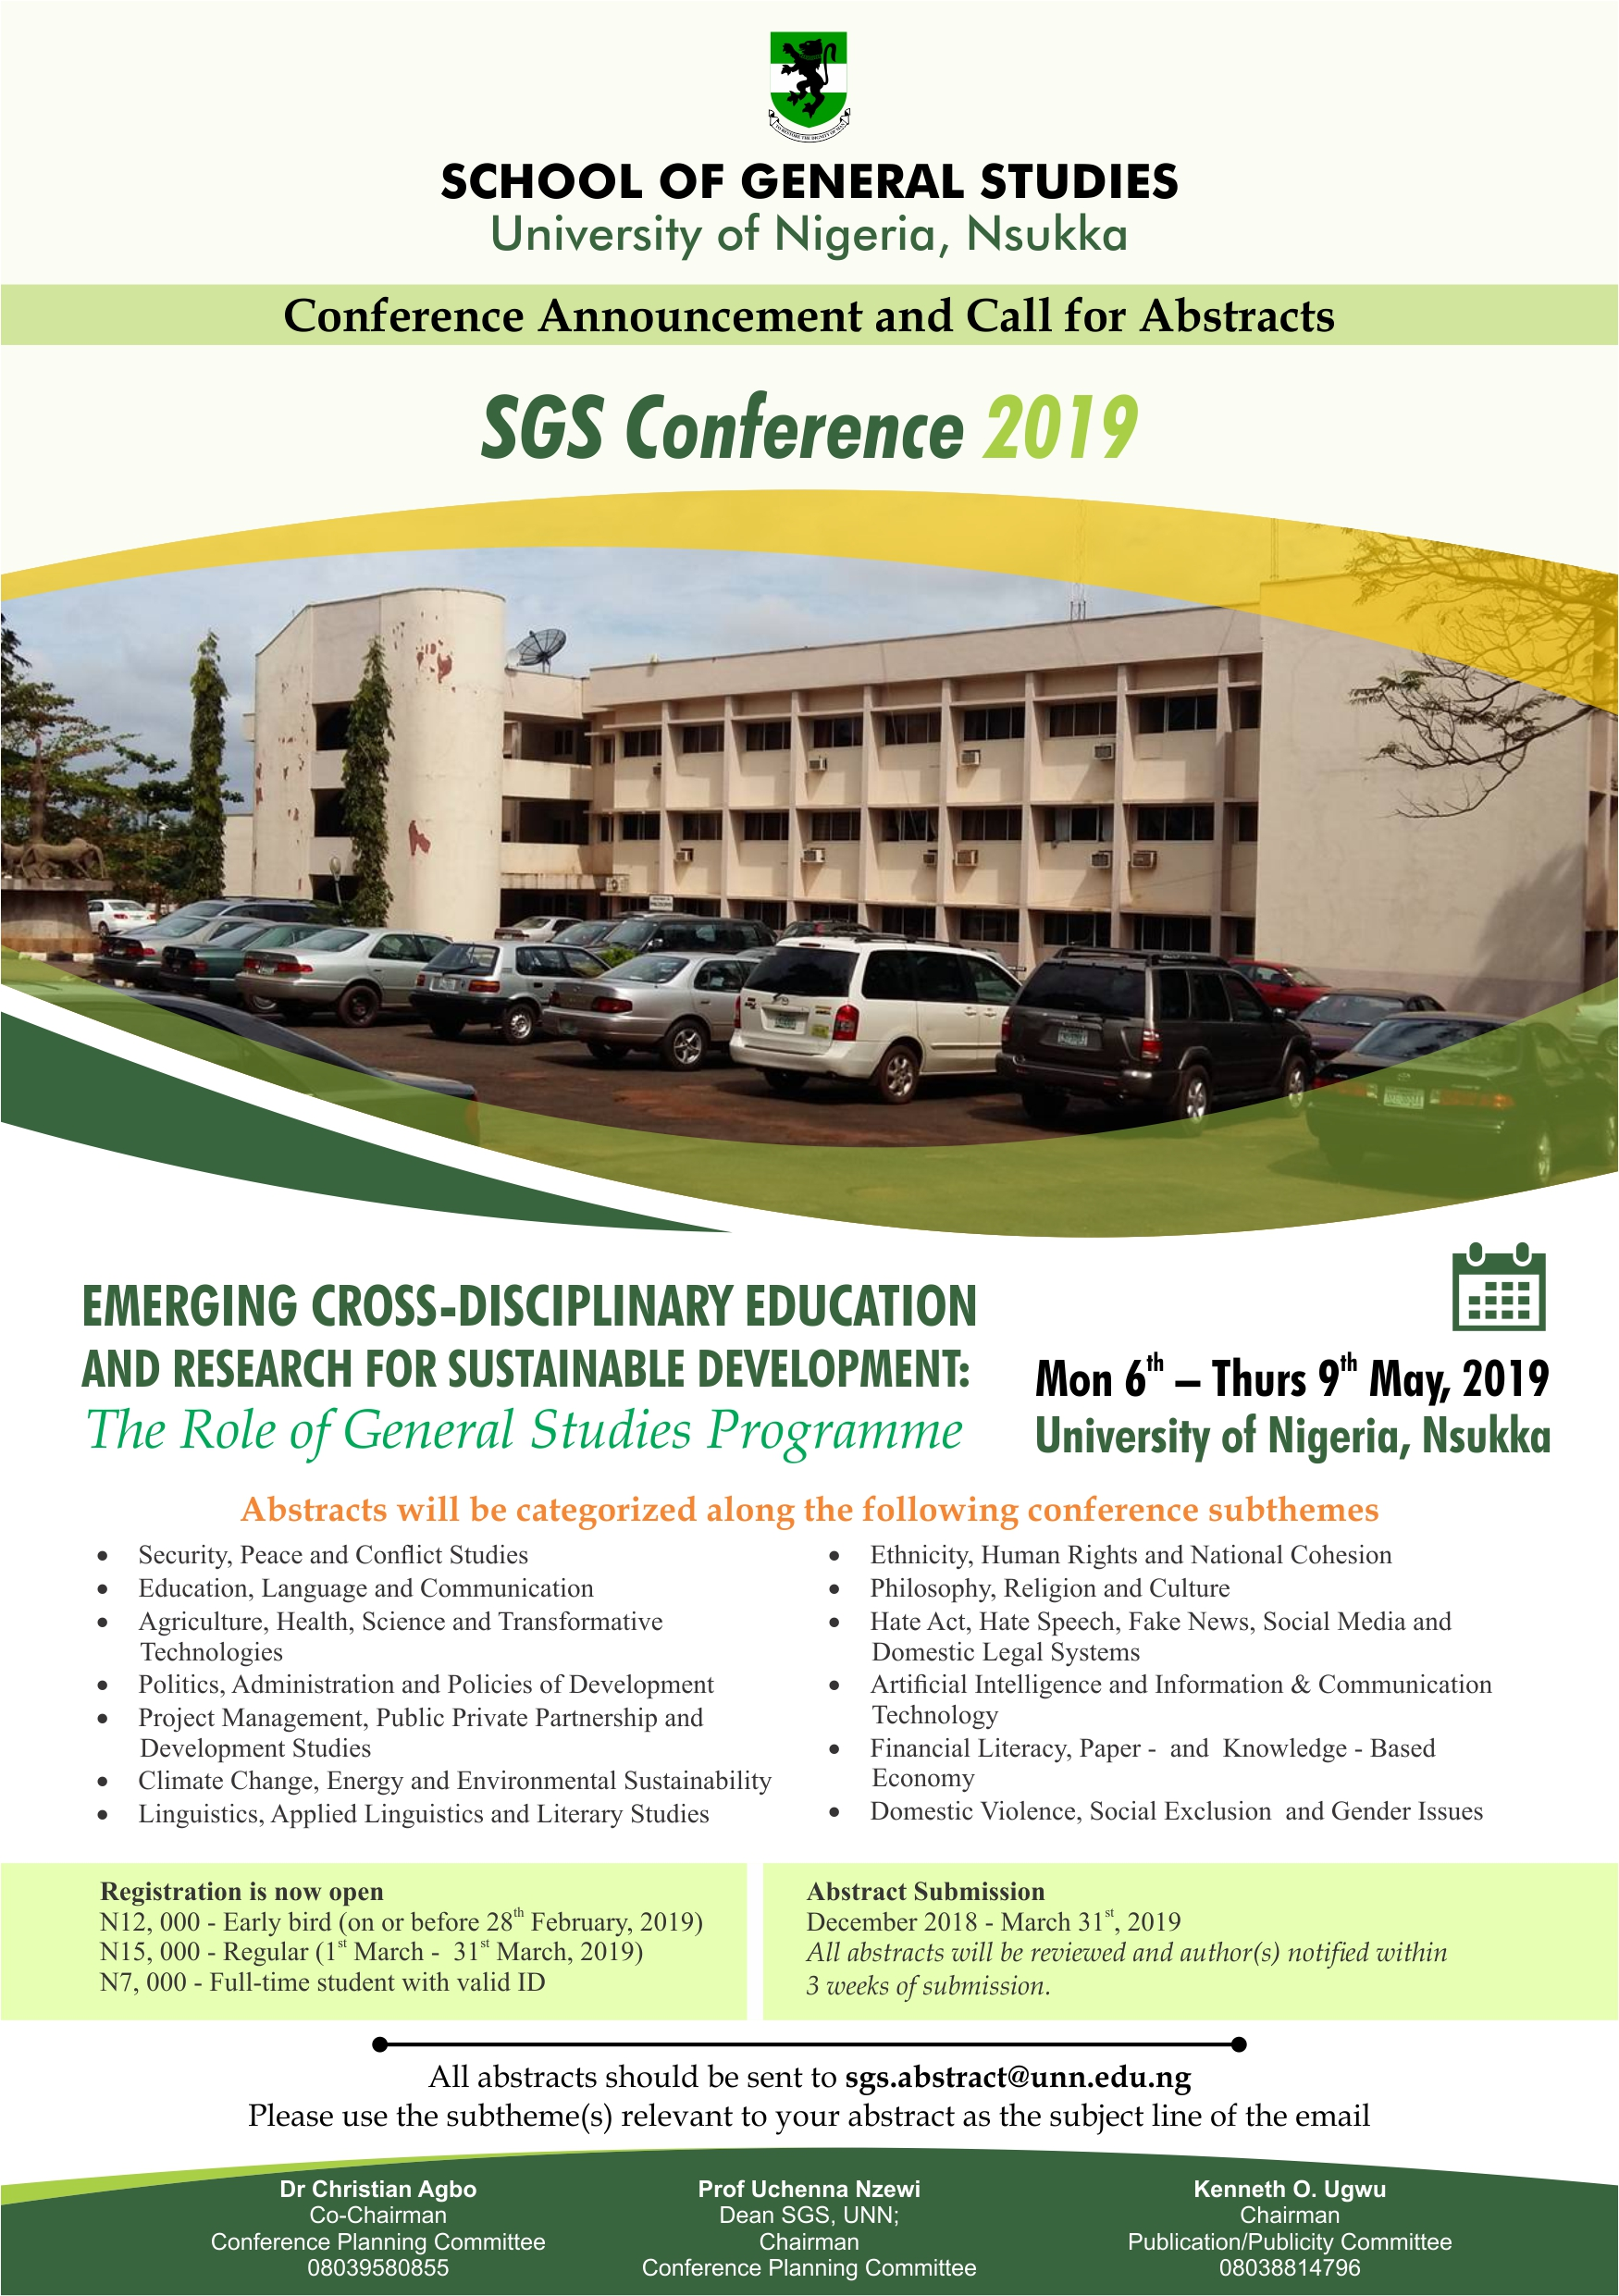 School Of General Studies (SGS) Conference 2019